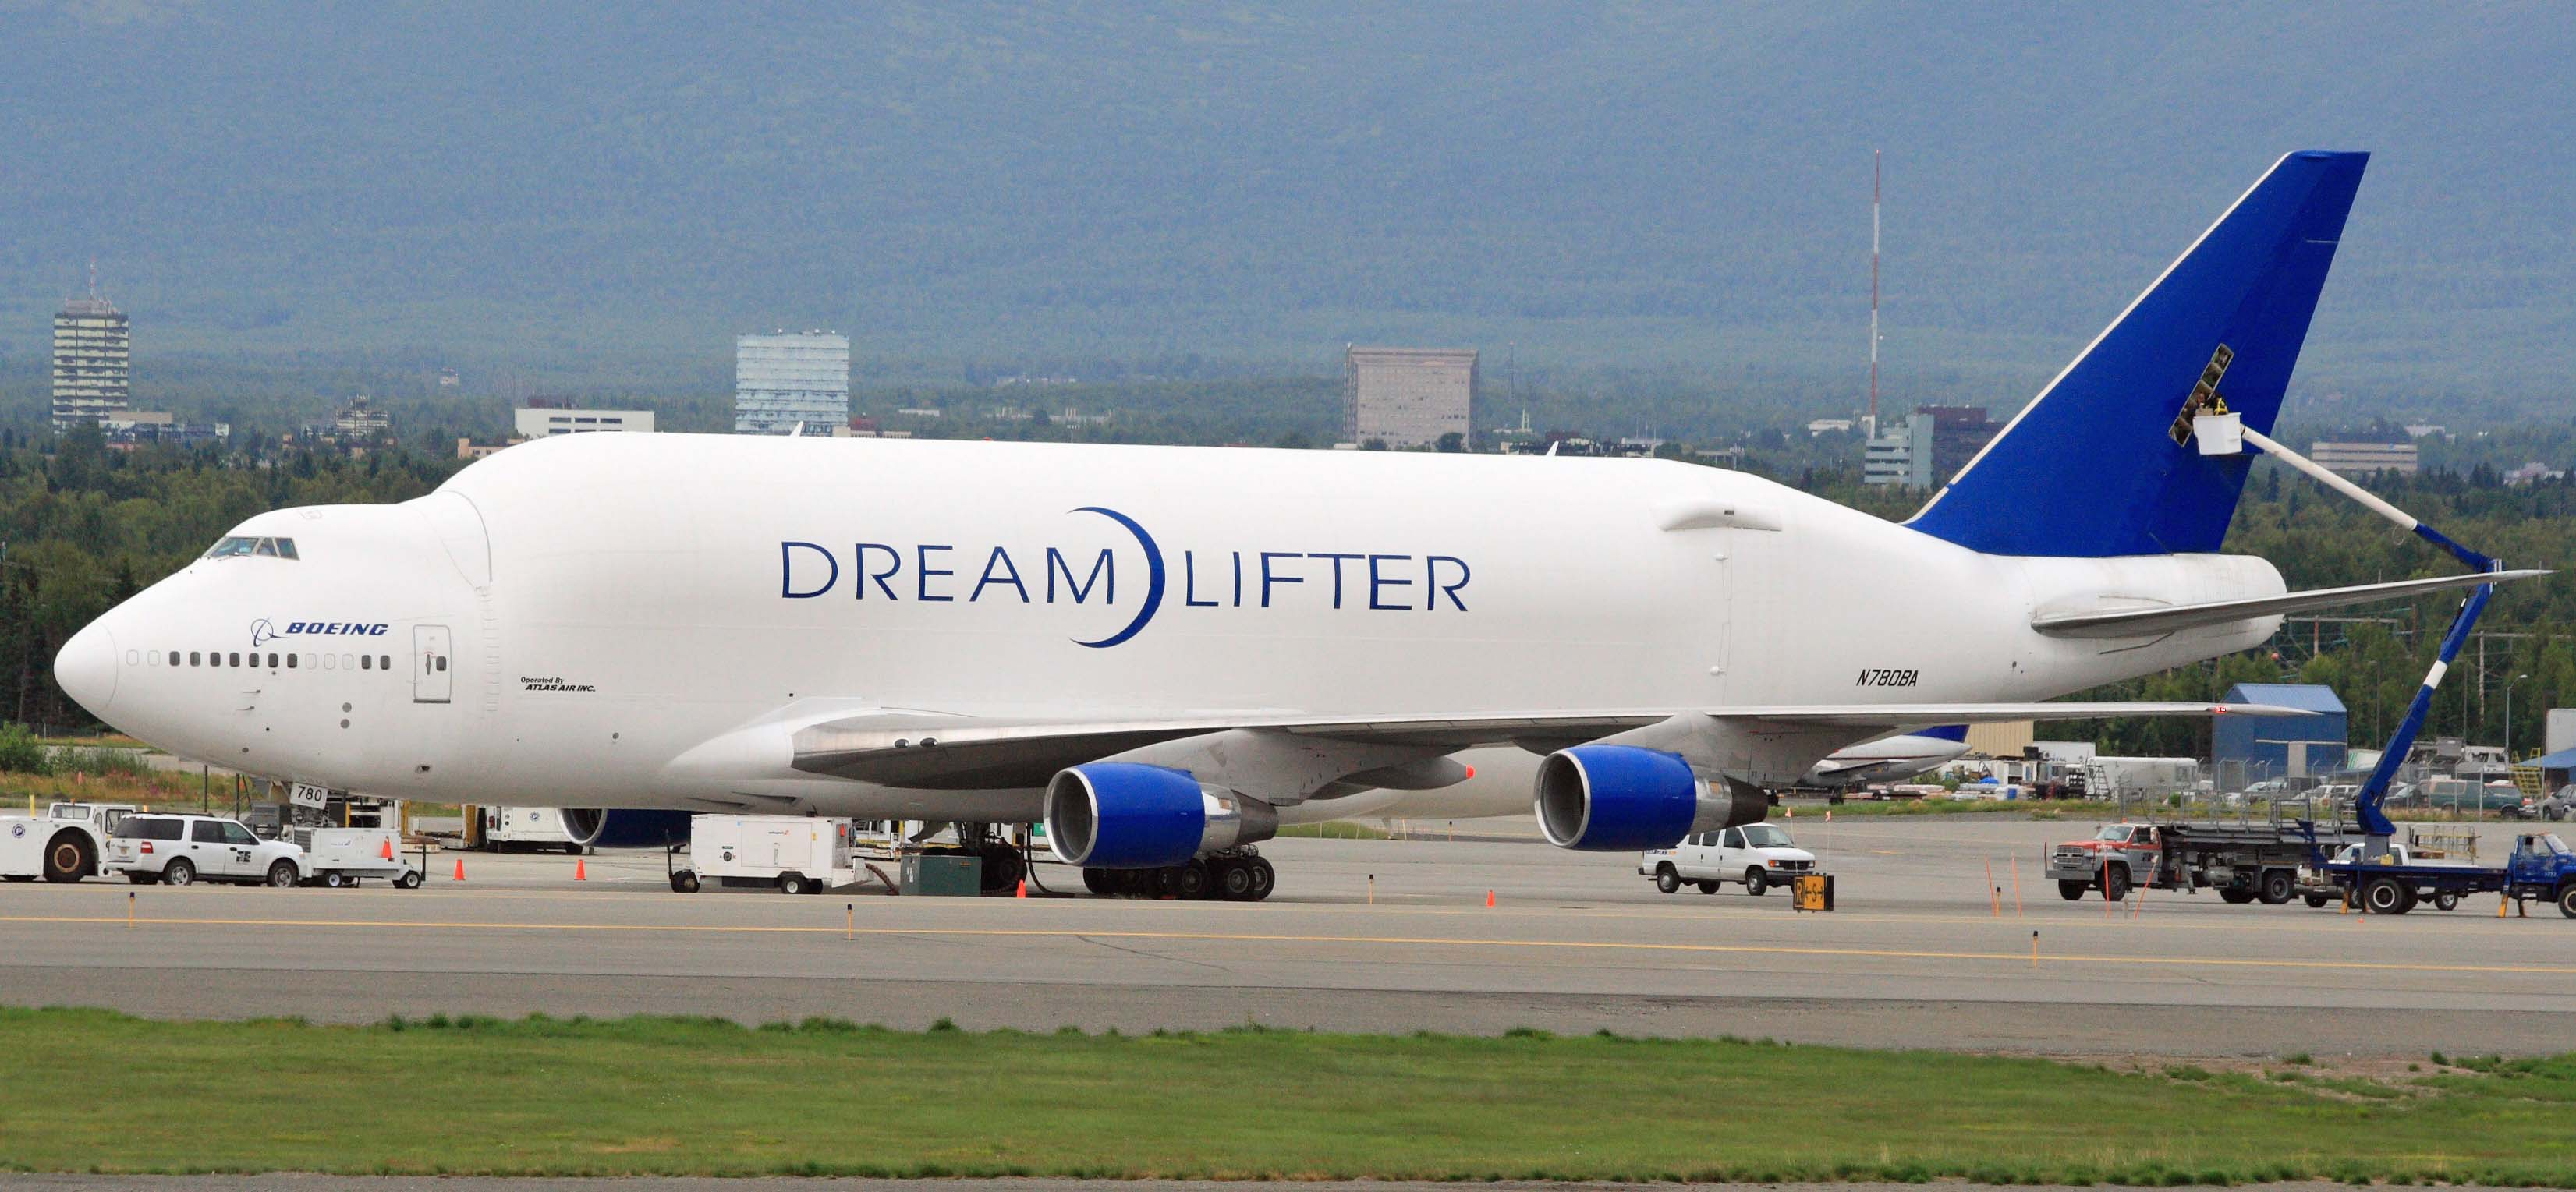 Atlas_Air_747_Dreamlifter_at_ANC_(6334752939)